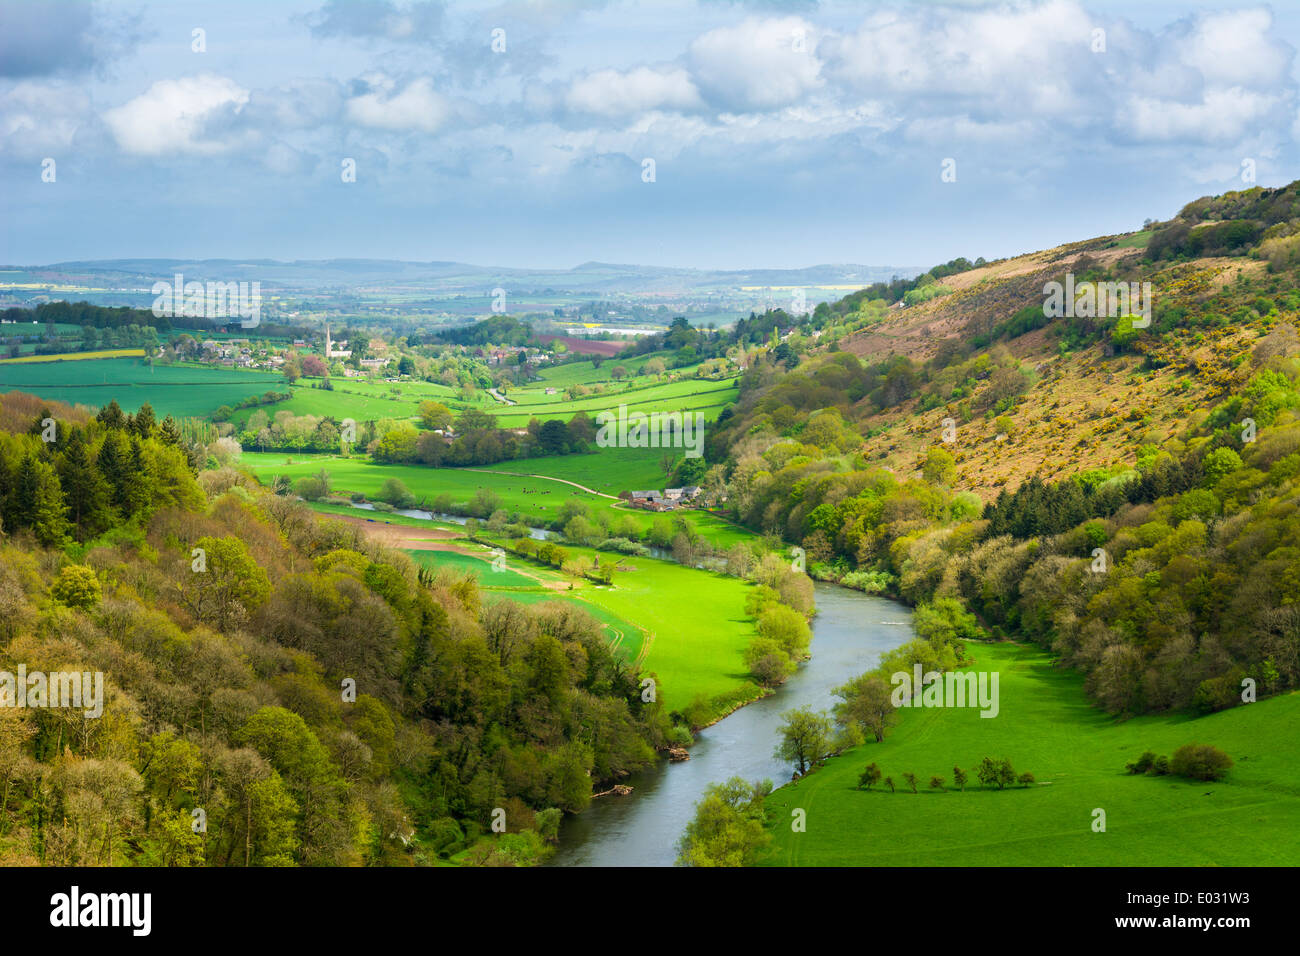 View over the Wye Valley in spring time from Yat Rock, Symonds Yat, Herefordshire, England - Stock Image